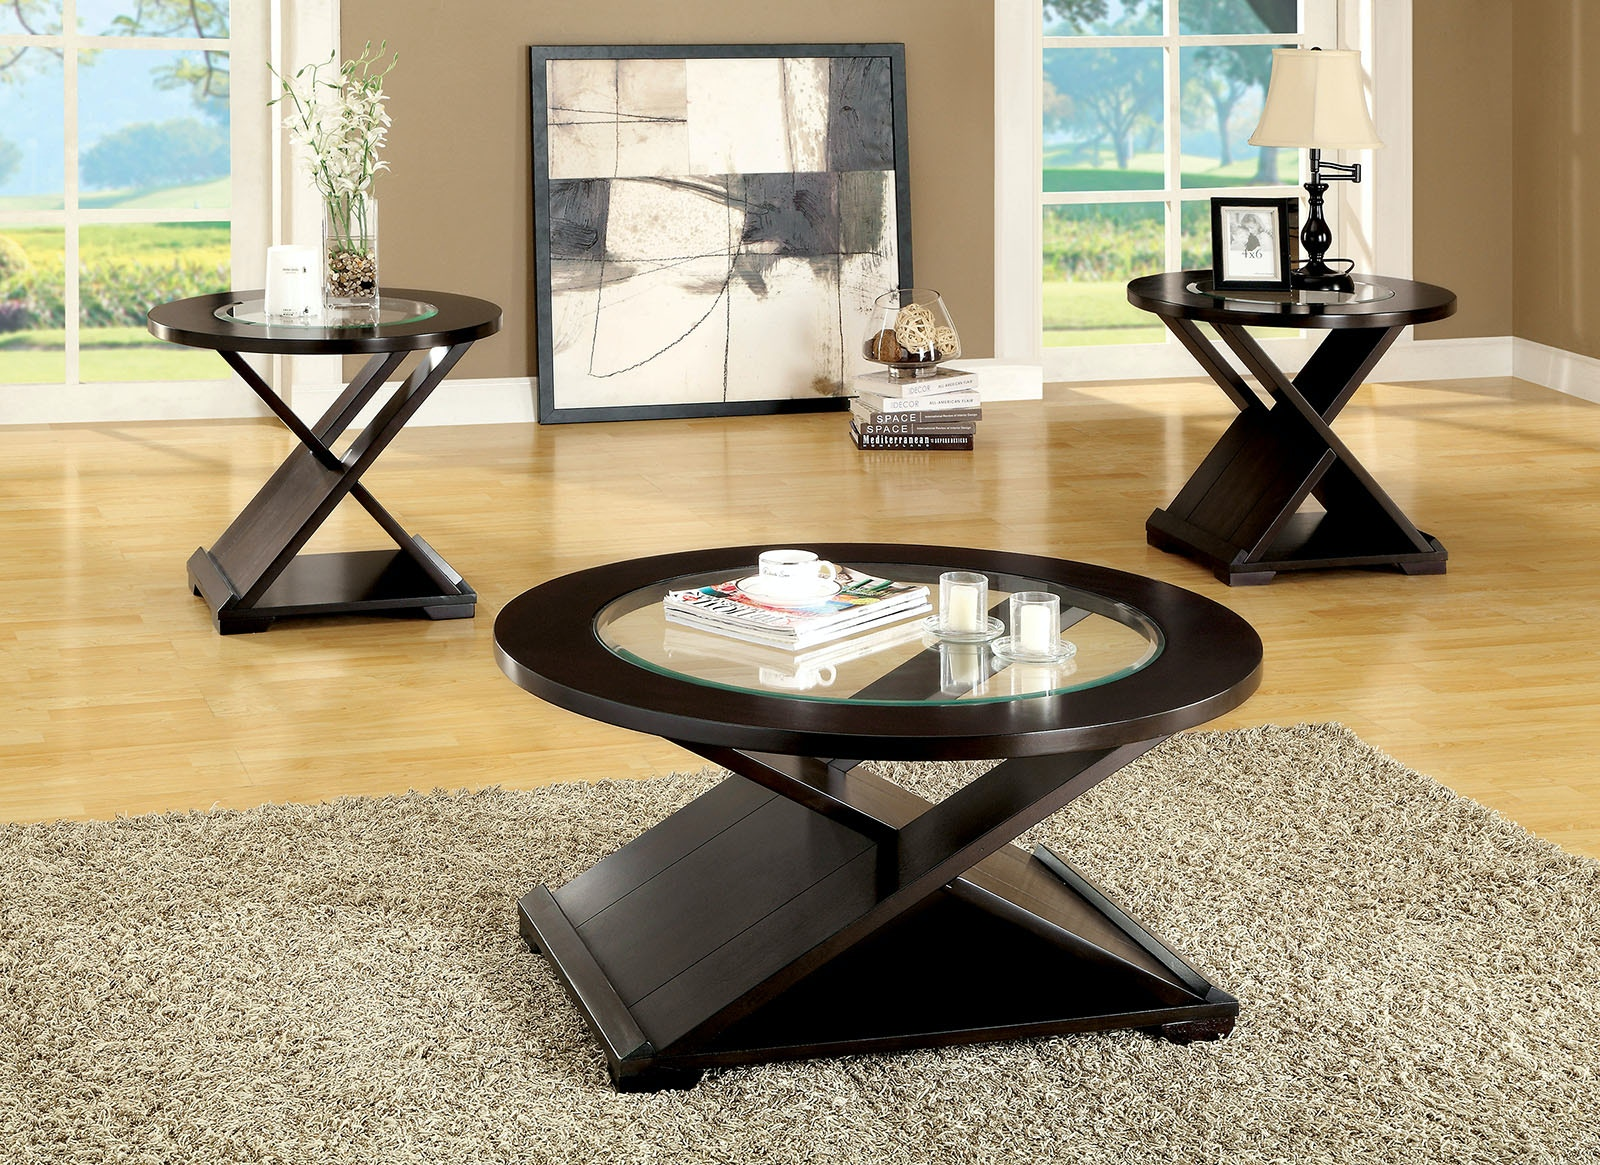 3 piece table set for living room best wall art furniture of america pc coffee 2 end cm4006 3pk at the mall